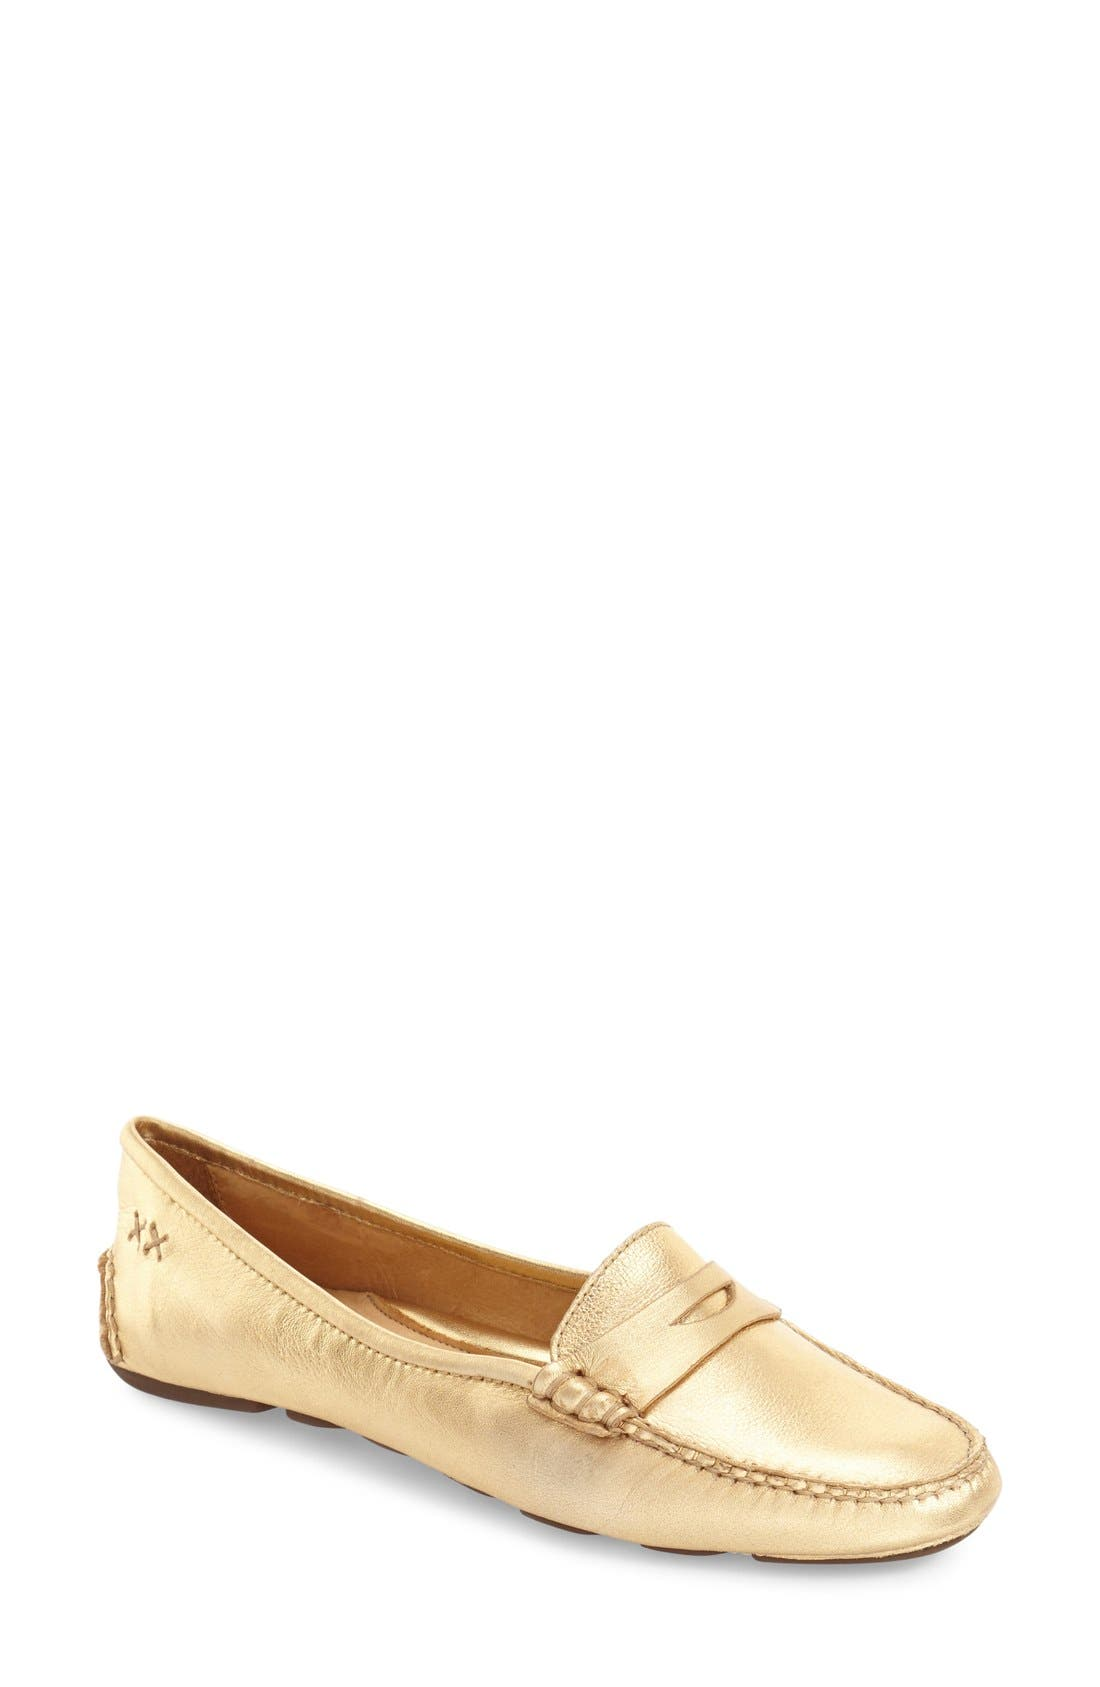 patricia green 'Bristol' Penny Loafer (Women)